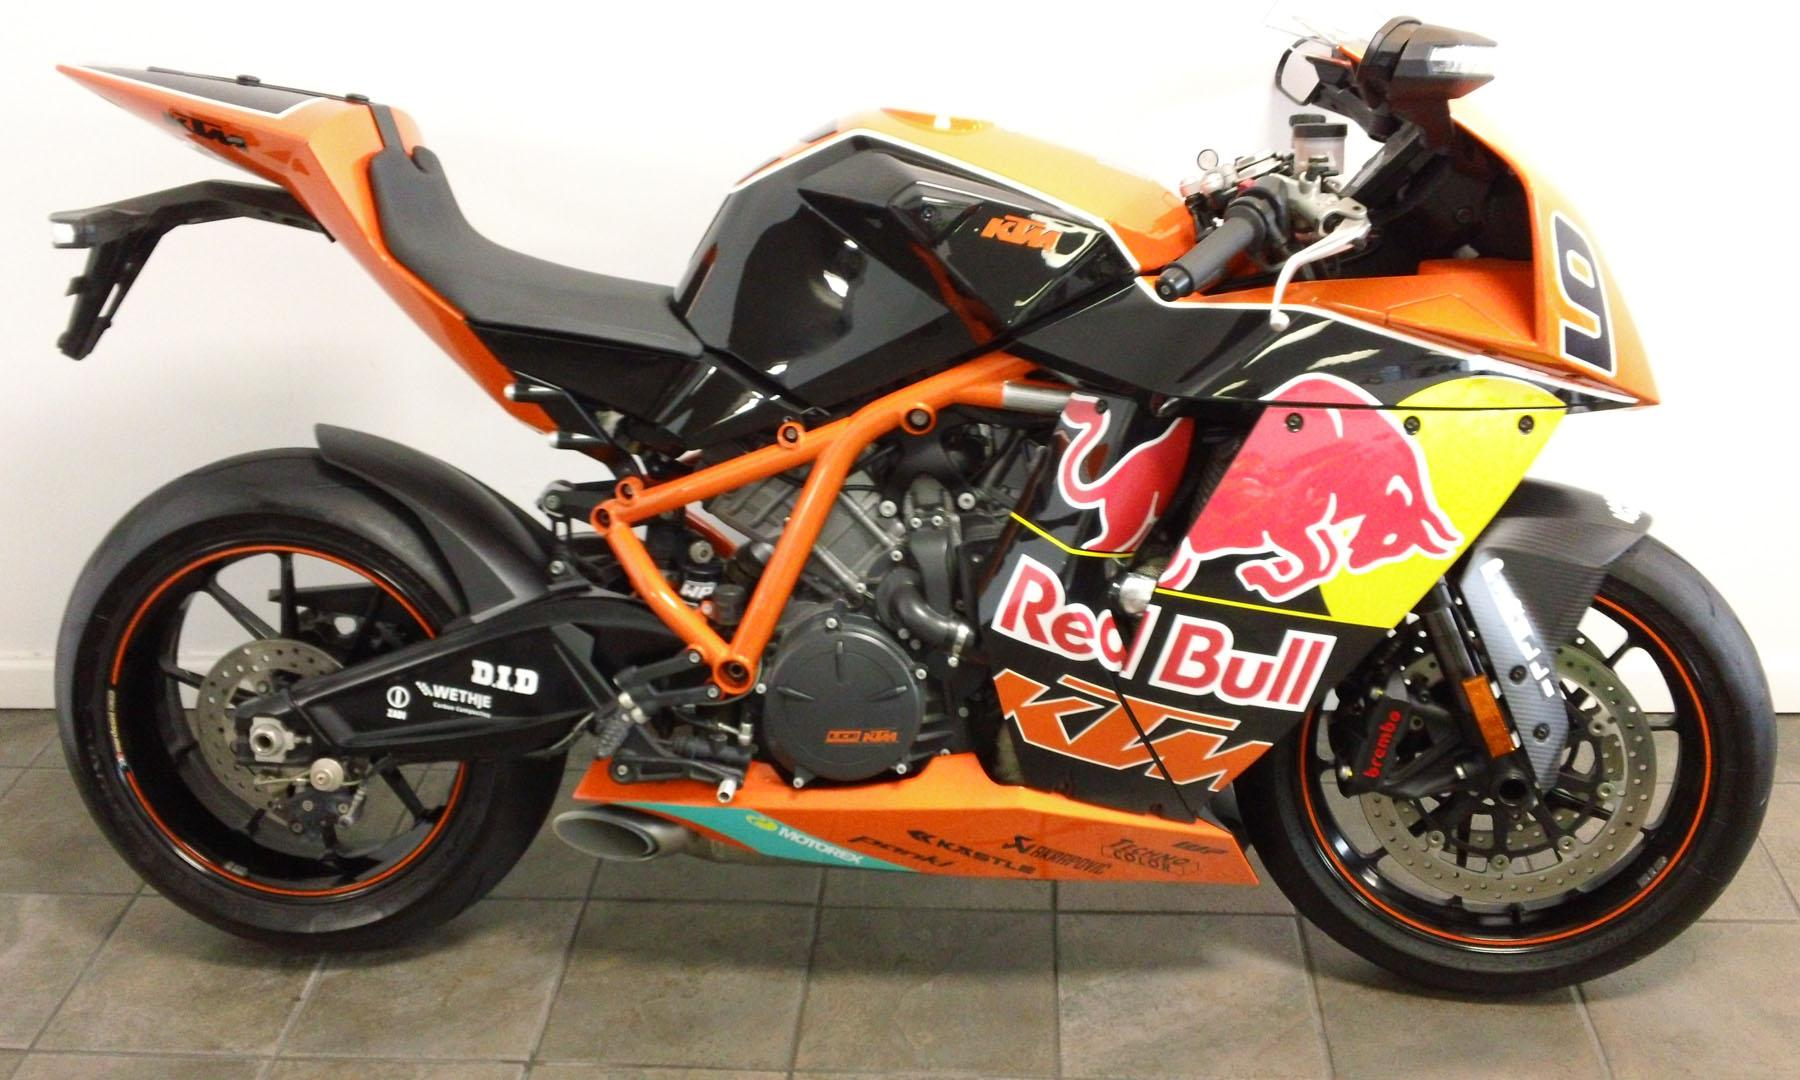 2010 KTM 1190 RC8 R Red Bull Limited Edition #4